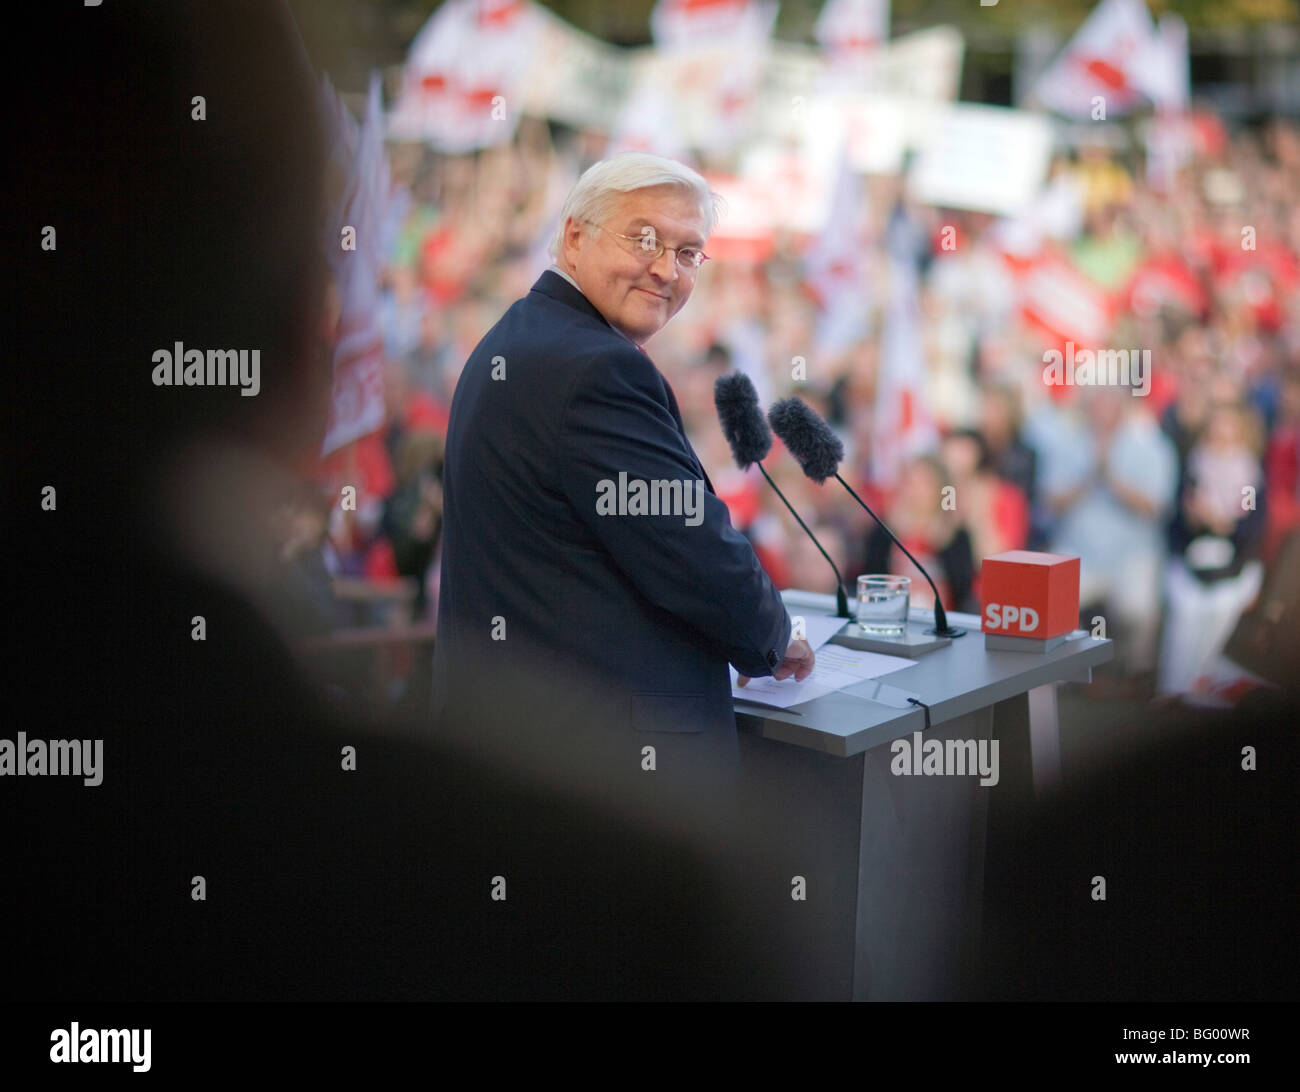 Frank Walter Steinmeier, SPD, Chancellor candidate, Muenster, Germany 17.09.2009 - Stock Image